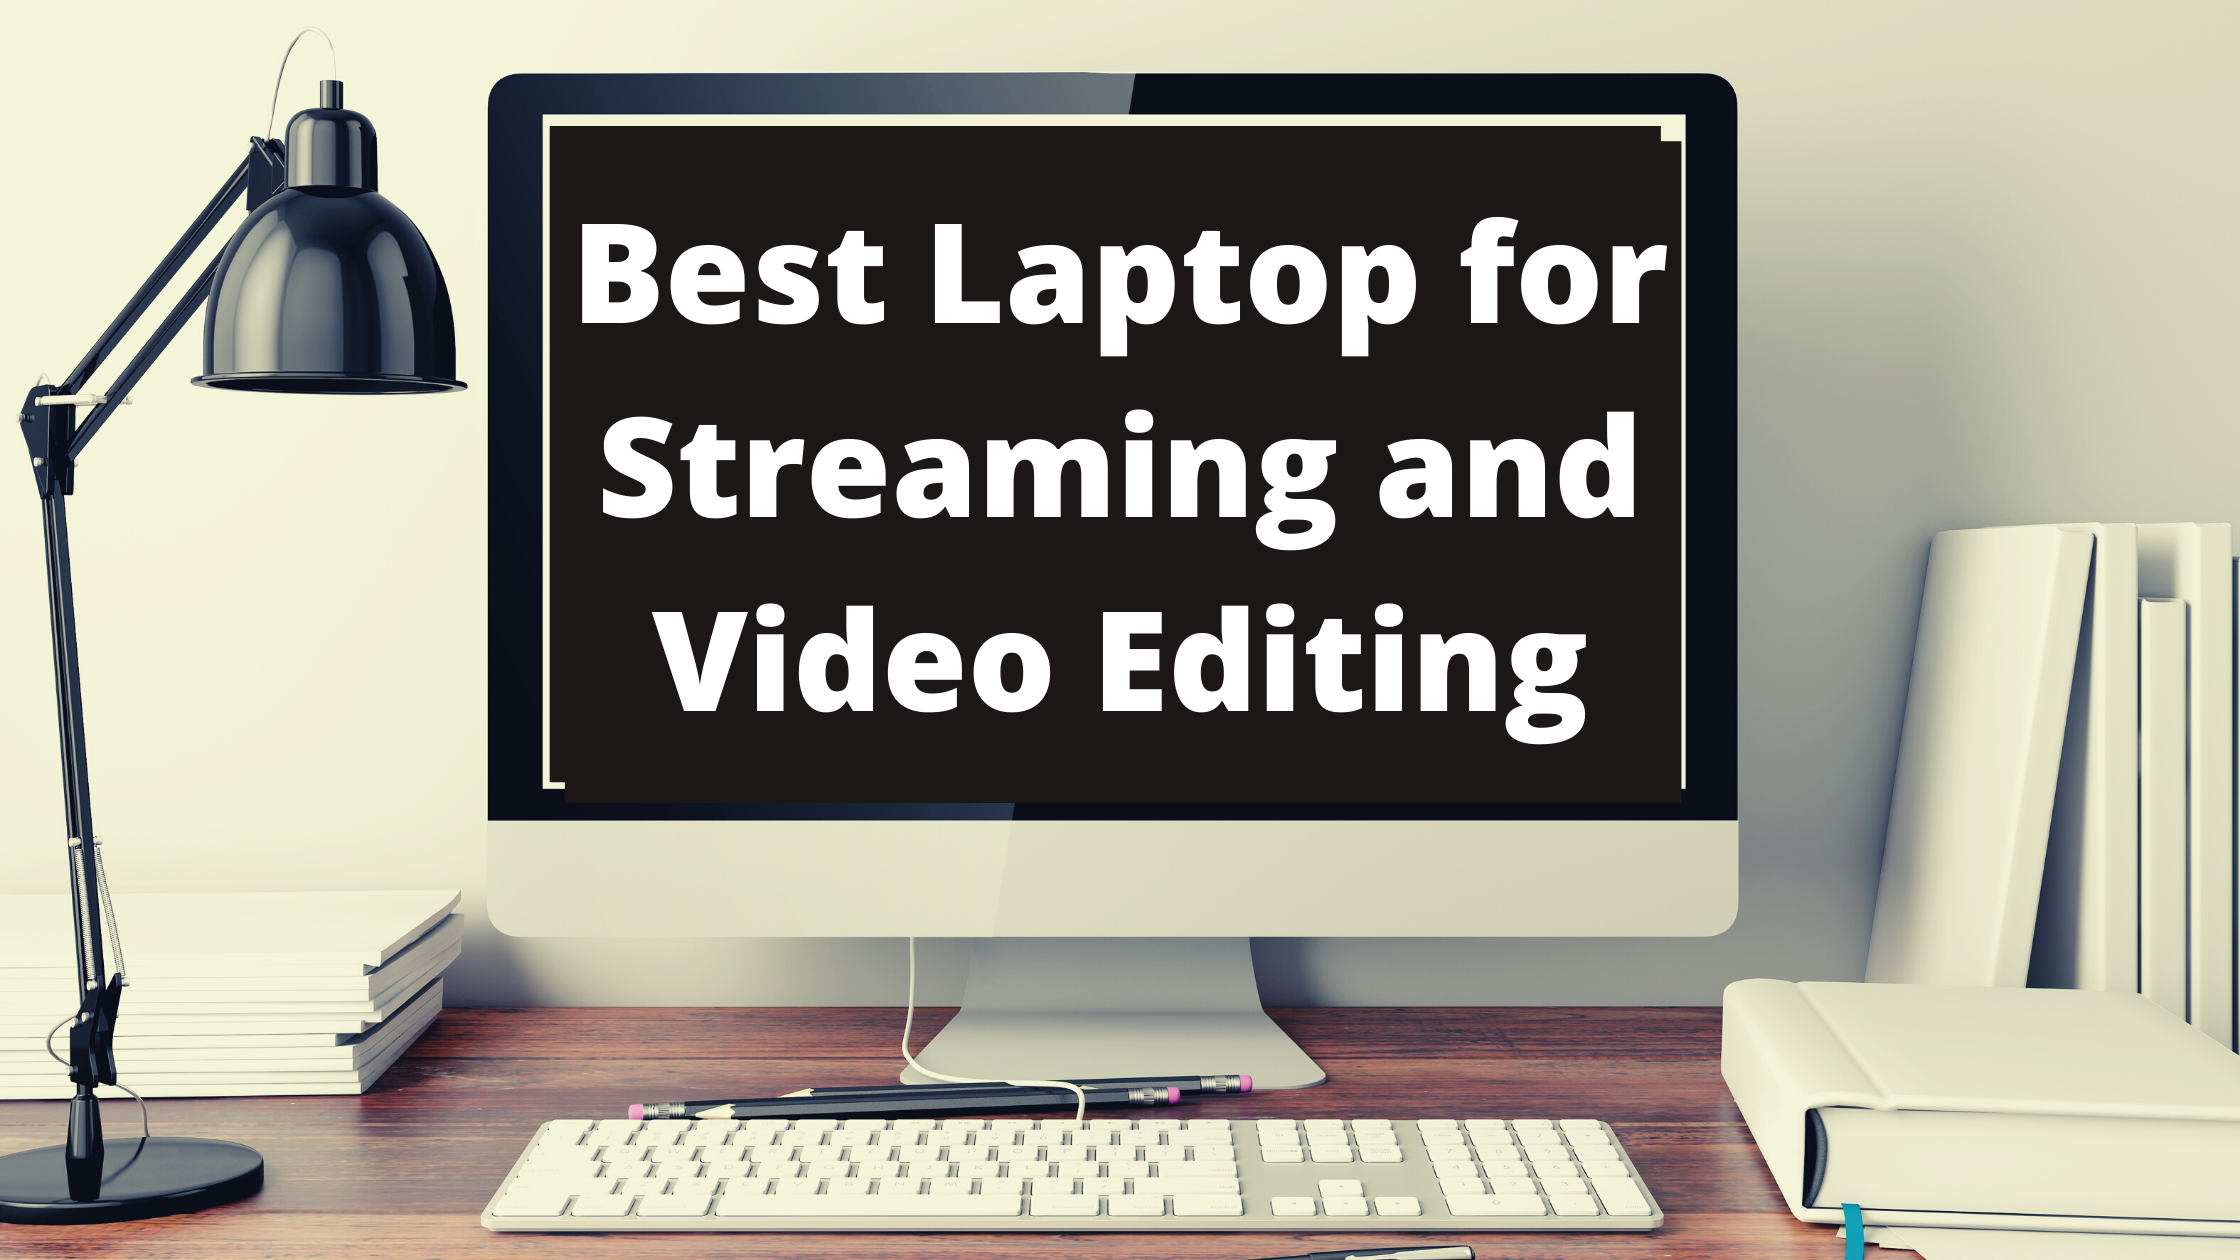 Best Laptop for Streaming and Video Editing